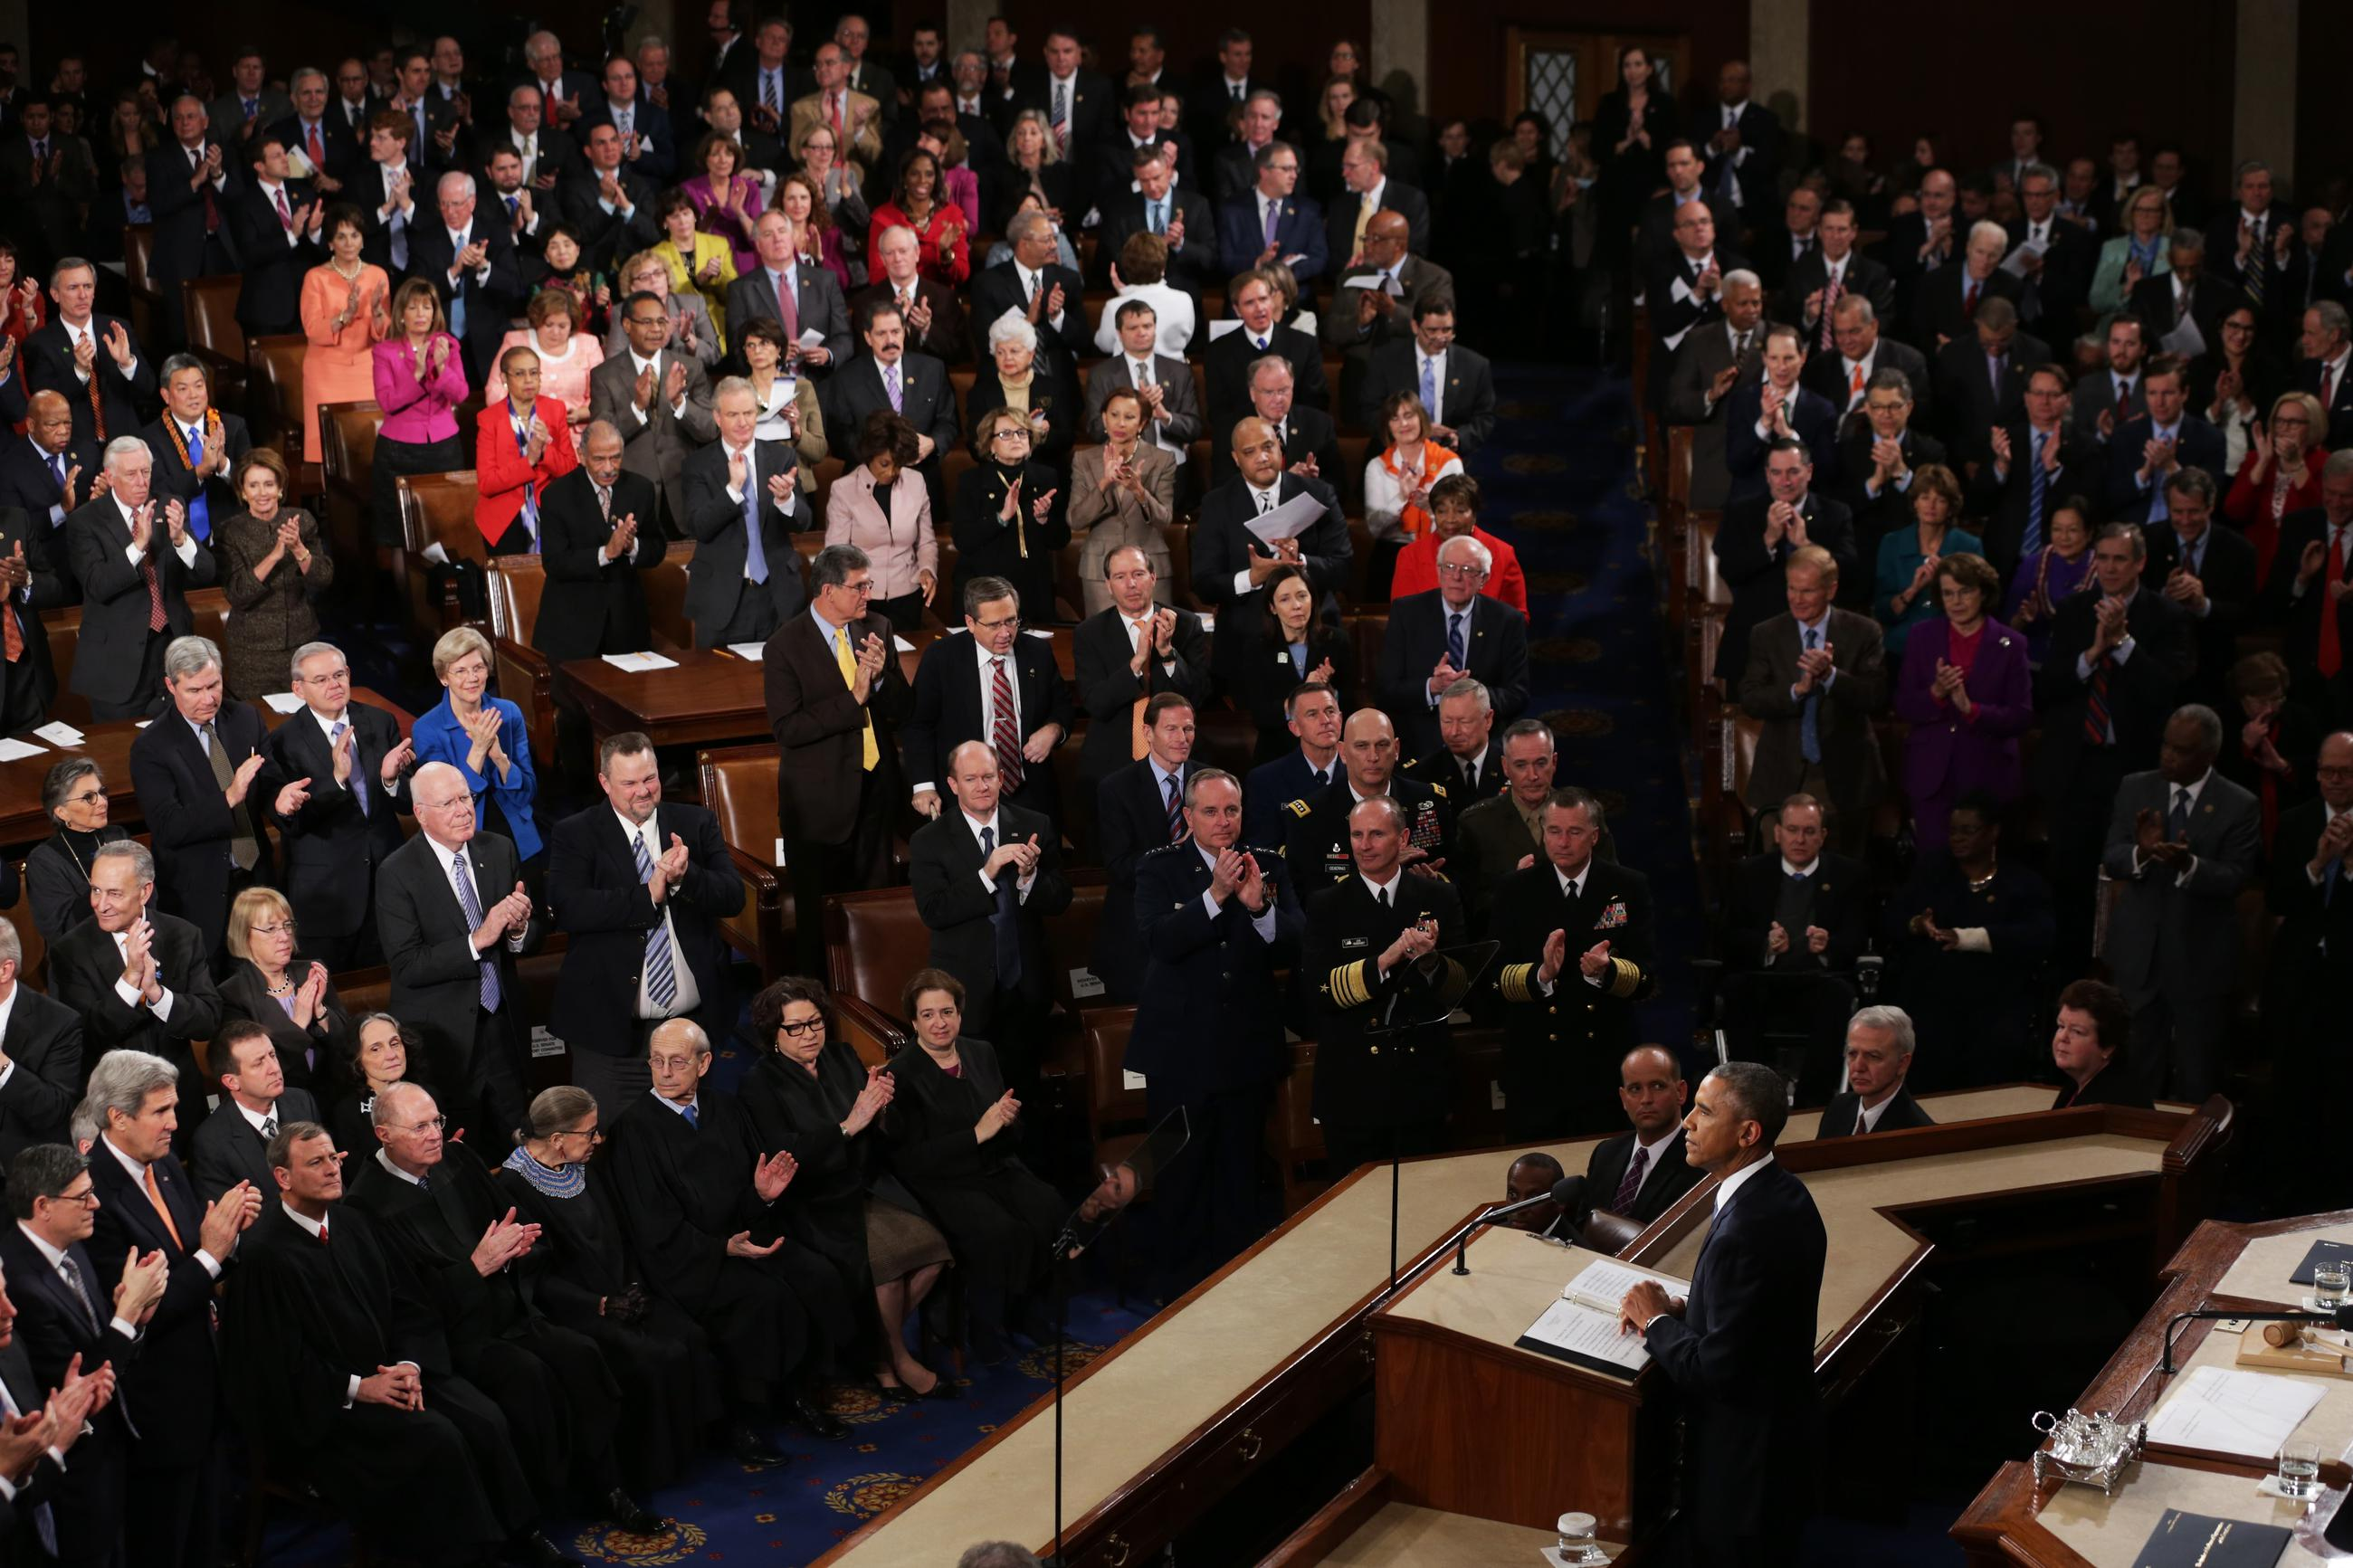 State of the Union 2015 Fact Check